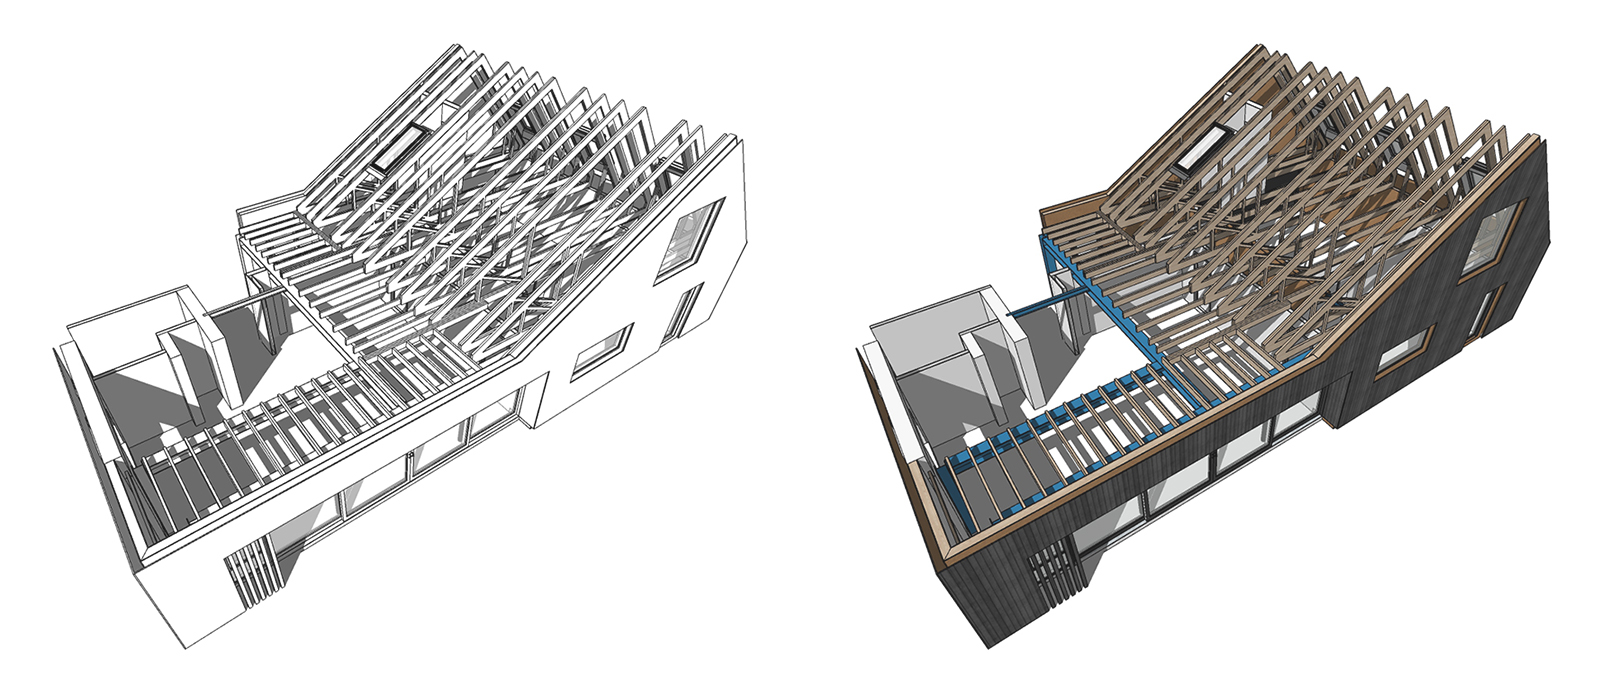 gyd-architecture | 3D model structural design